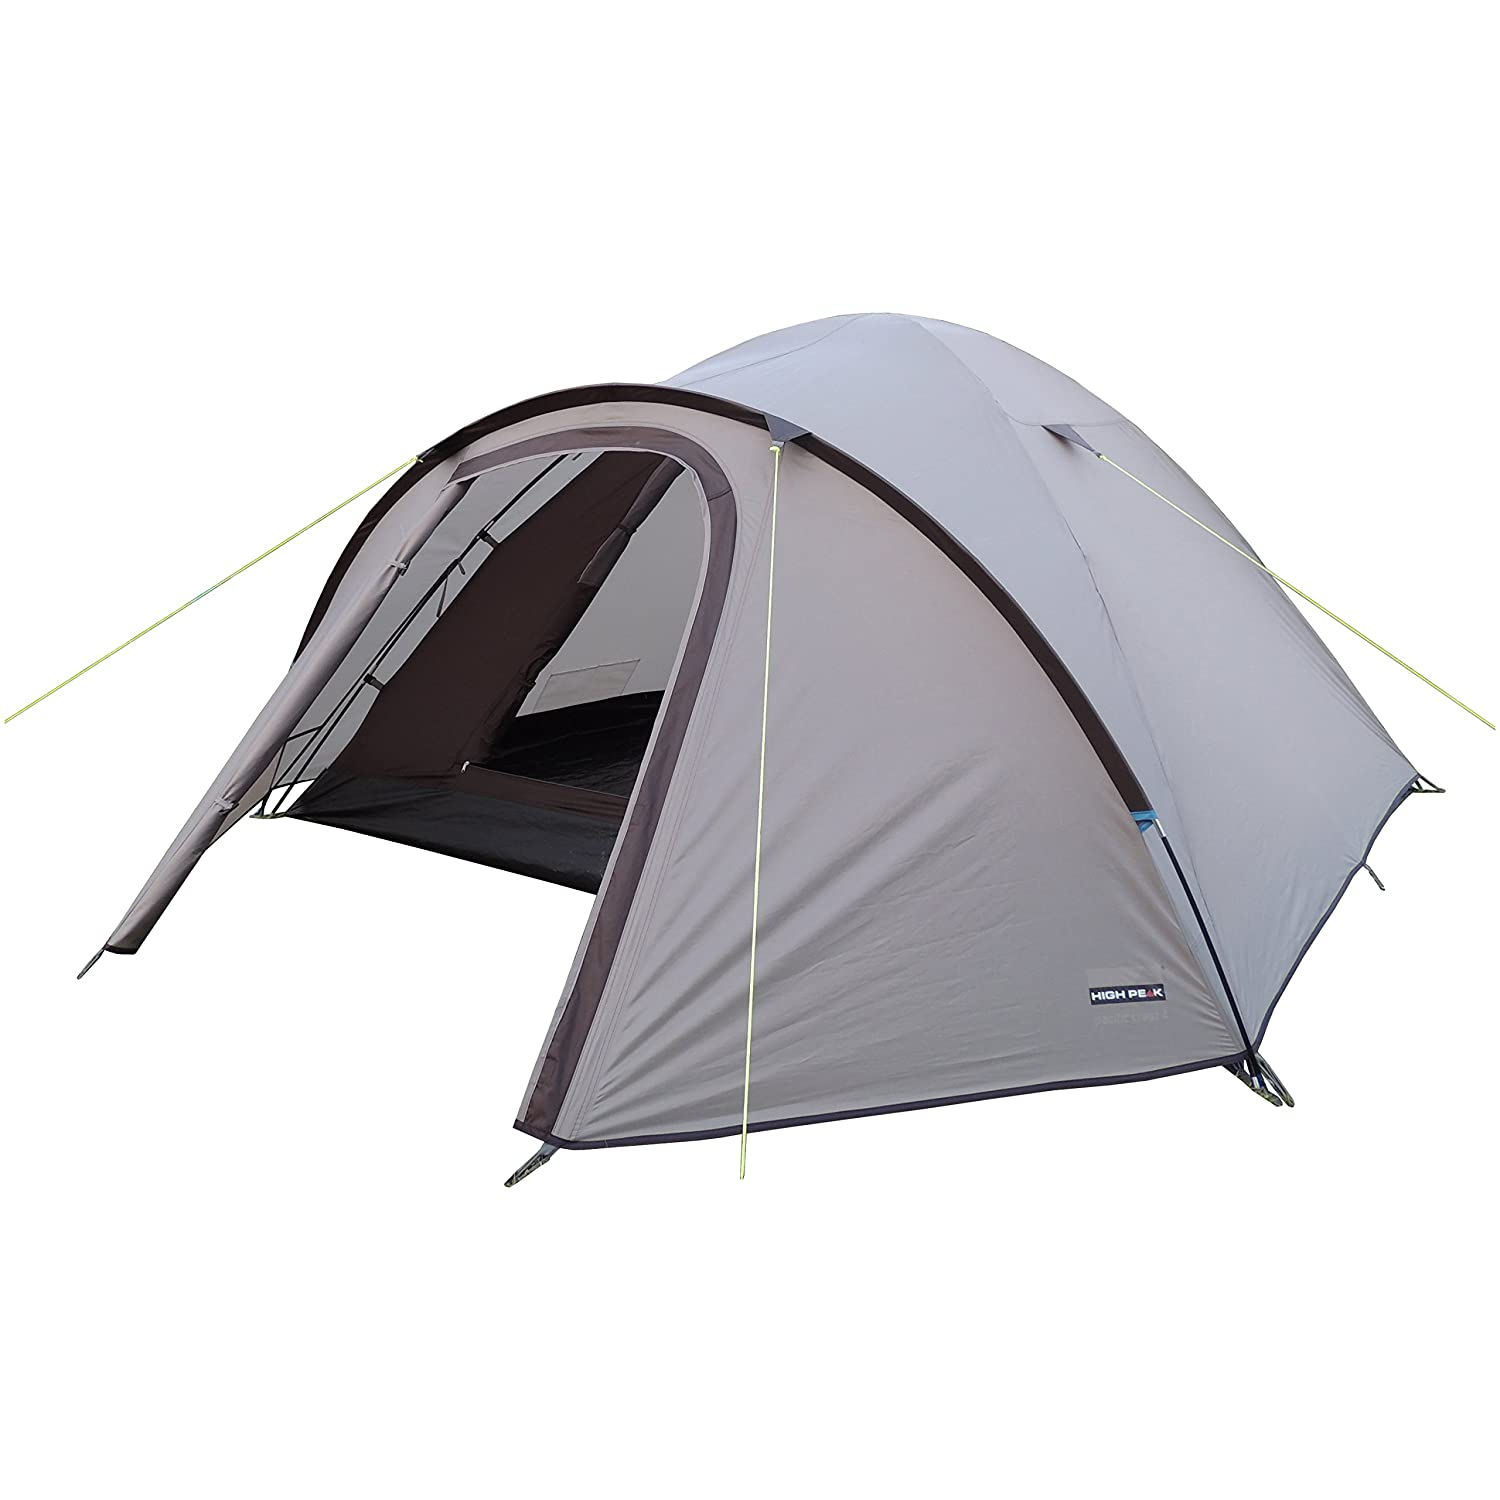 High Peak Outdoors Pacific Crest Tent (4-Person)